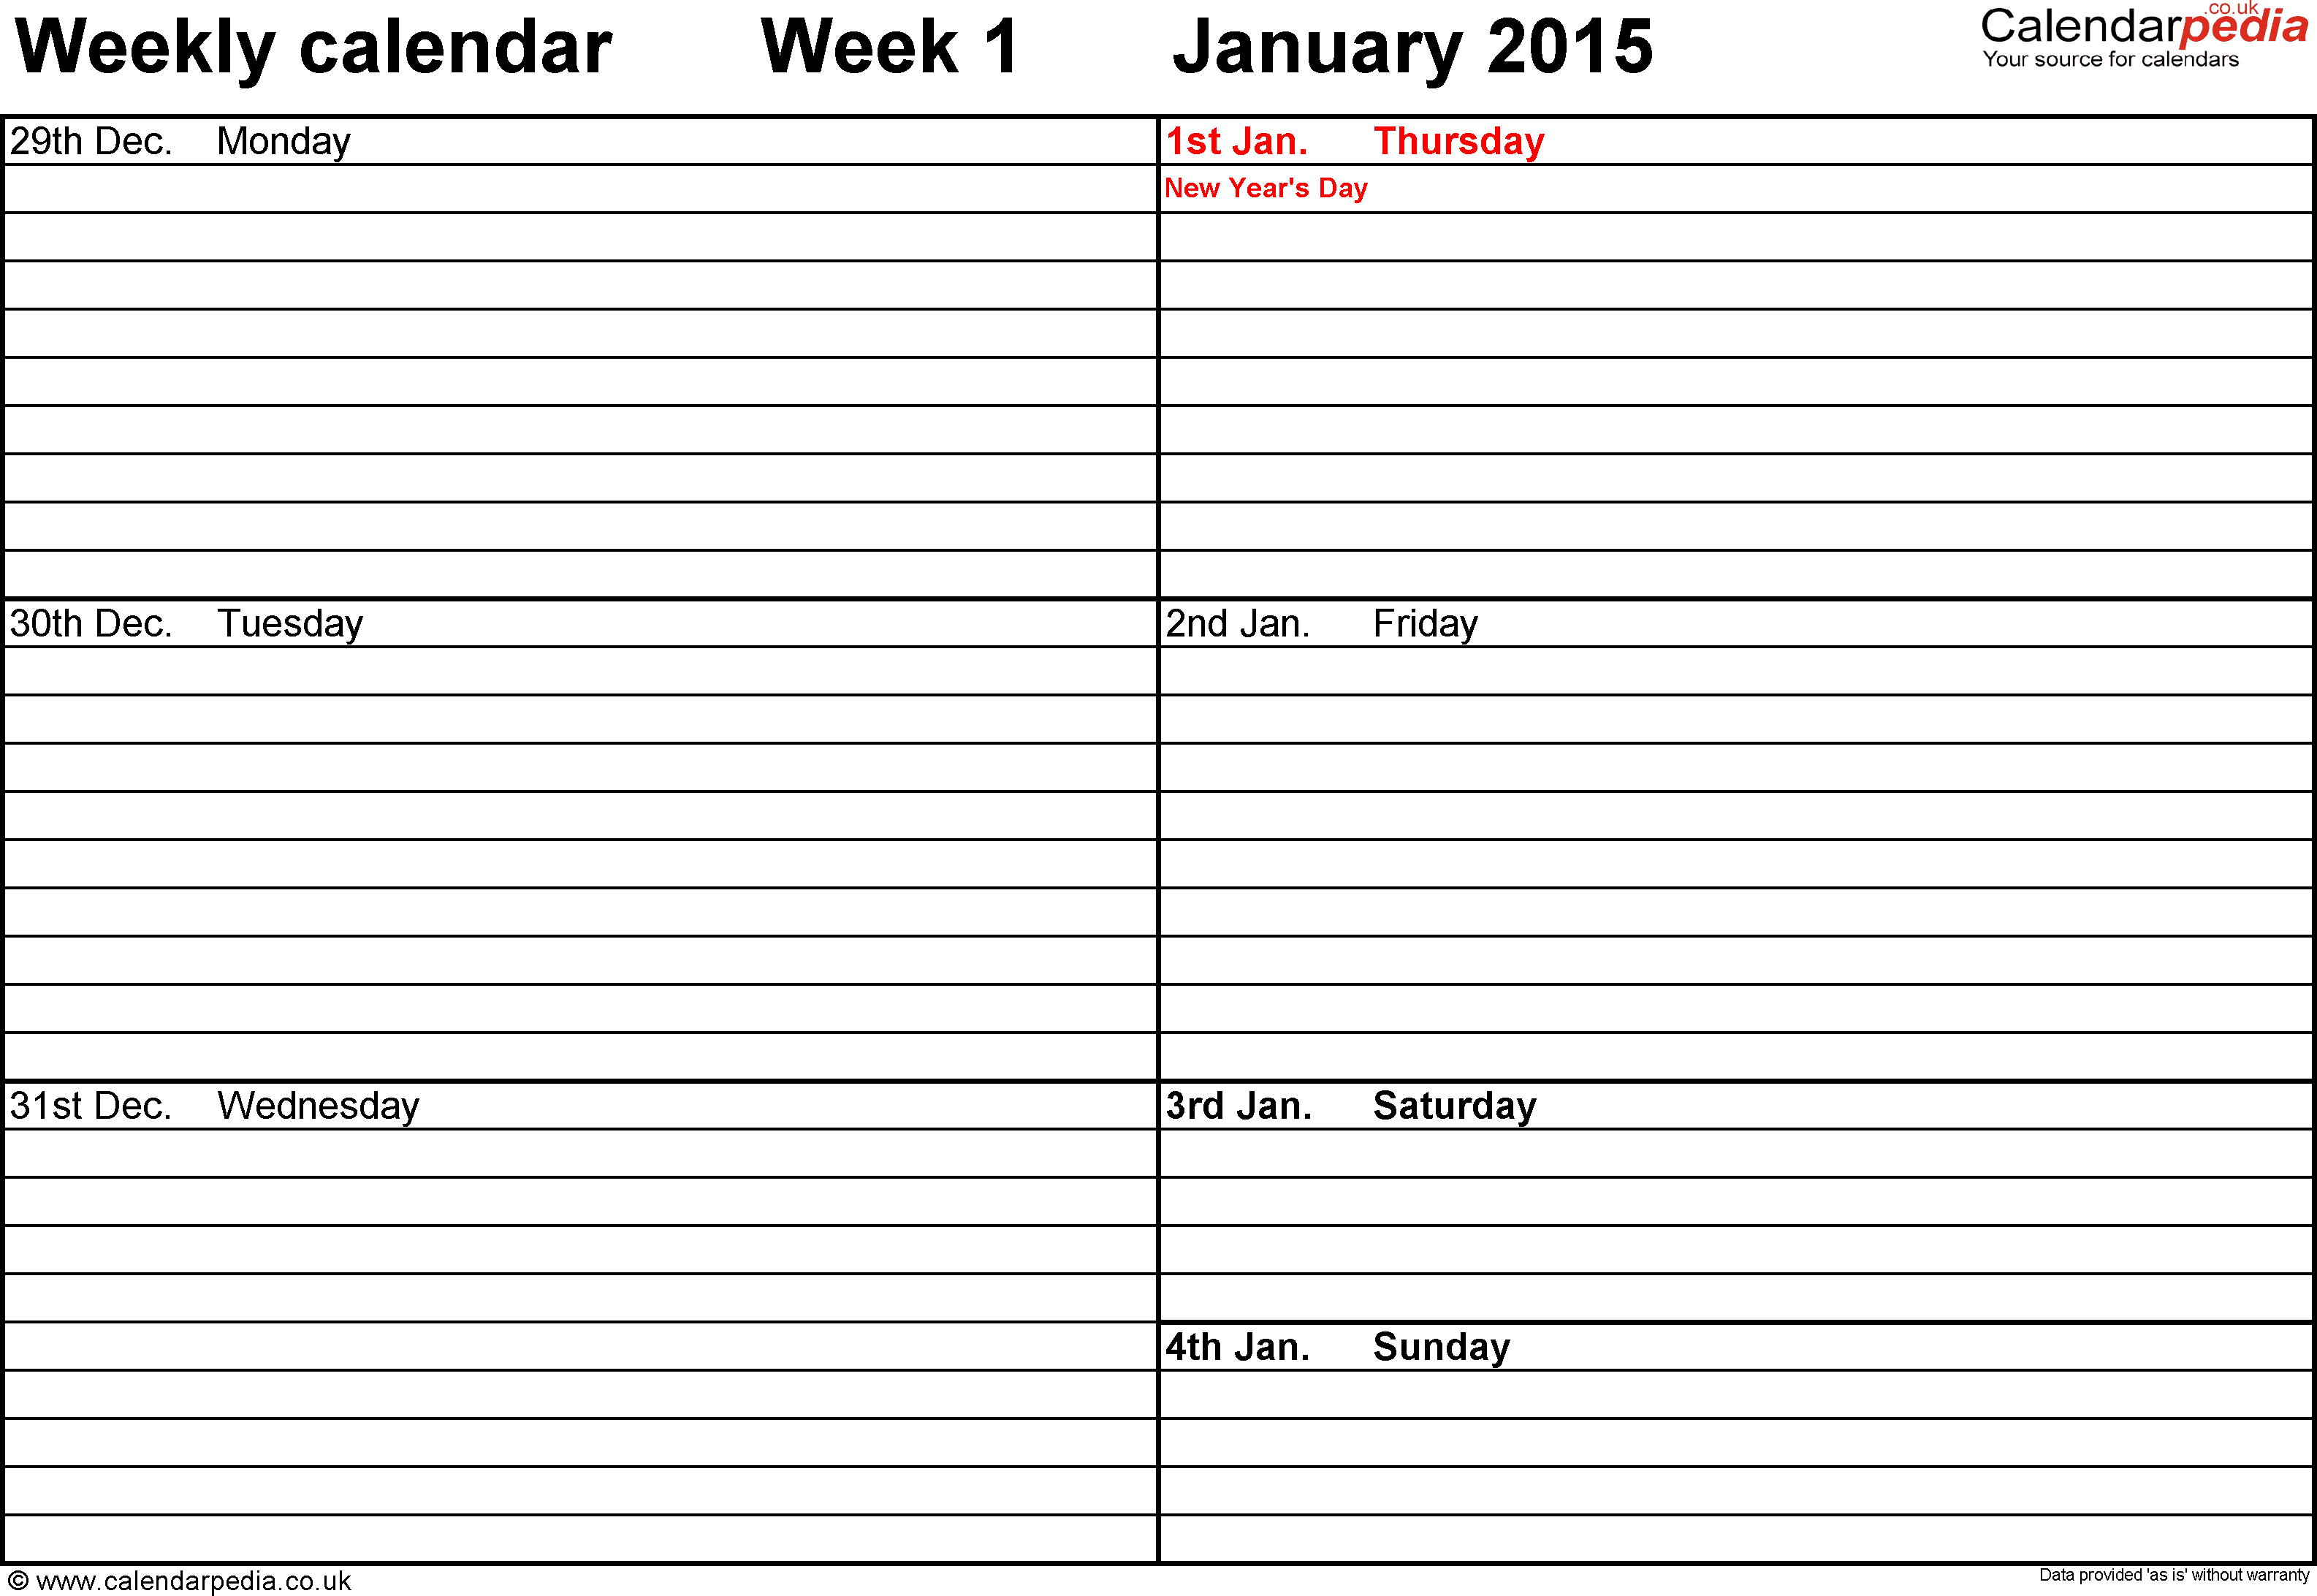 Free Printable Weekly Calendar Templates 2015